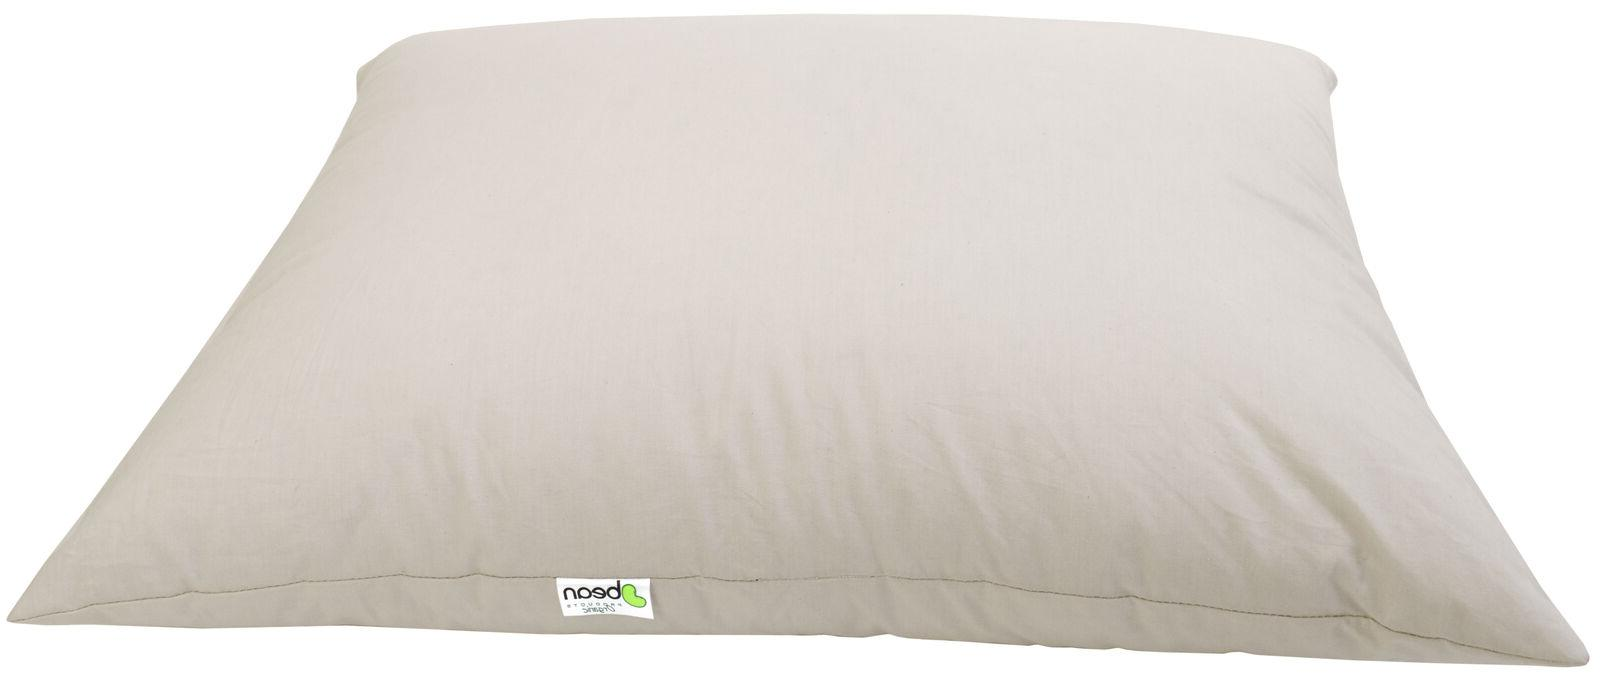 Latex Bed Organic, All in USA,